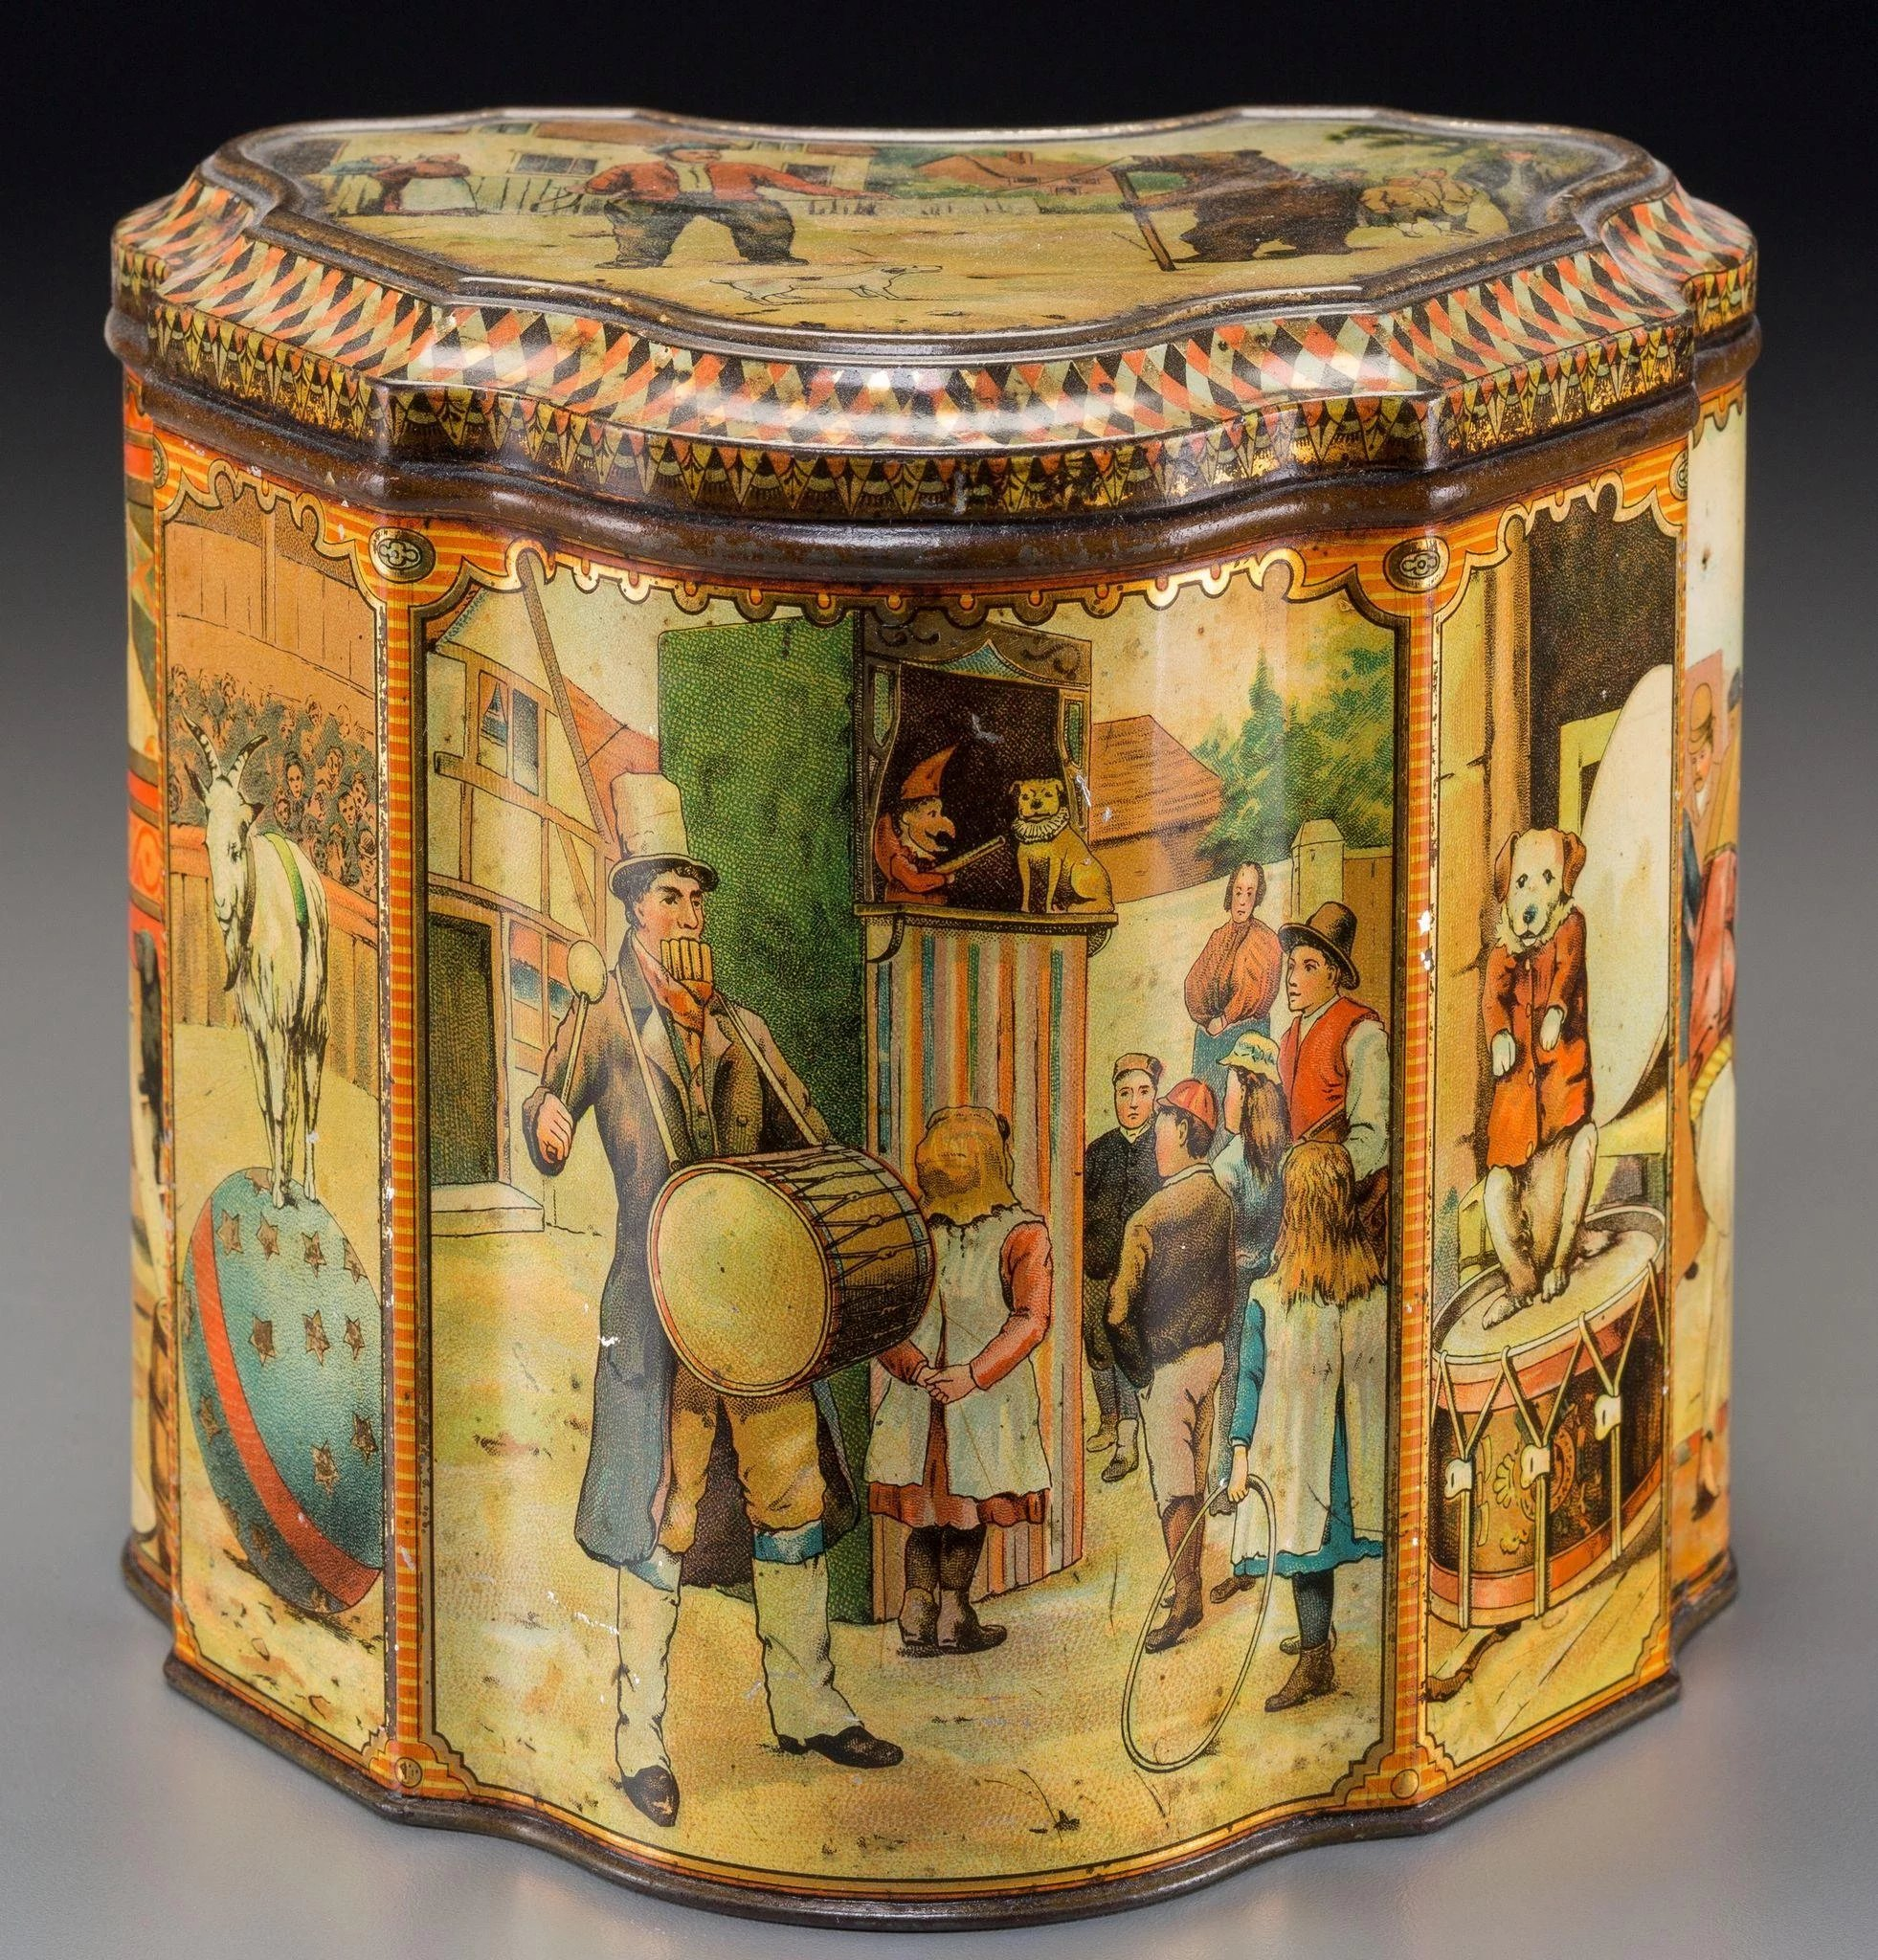 Antiques Collectibles: Antique Biscuit Tin, Rare Circus Themed, By Huntley